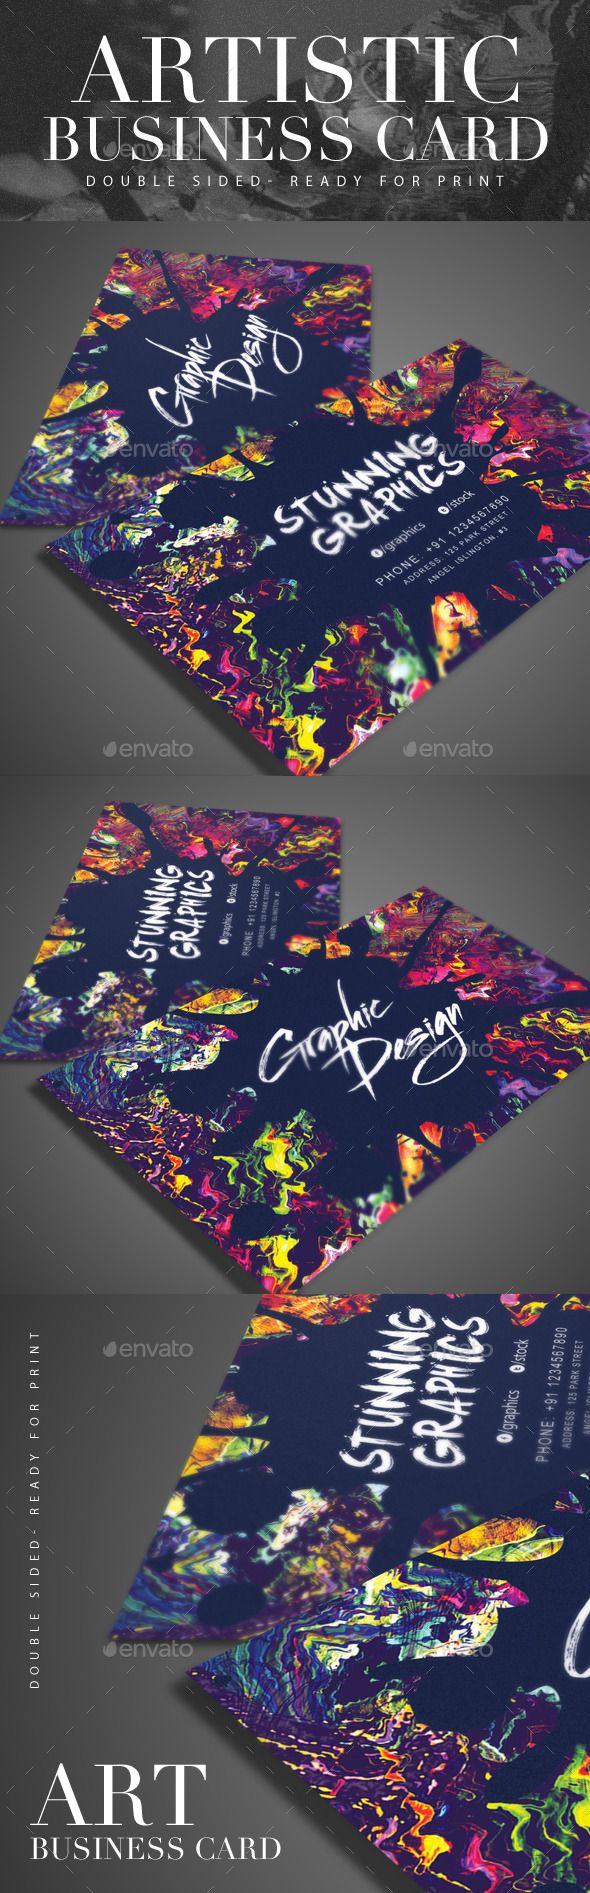 Artistic Business Card Card Templates Business Cards And Template